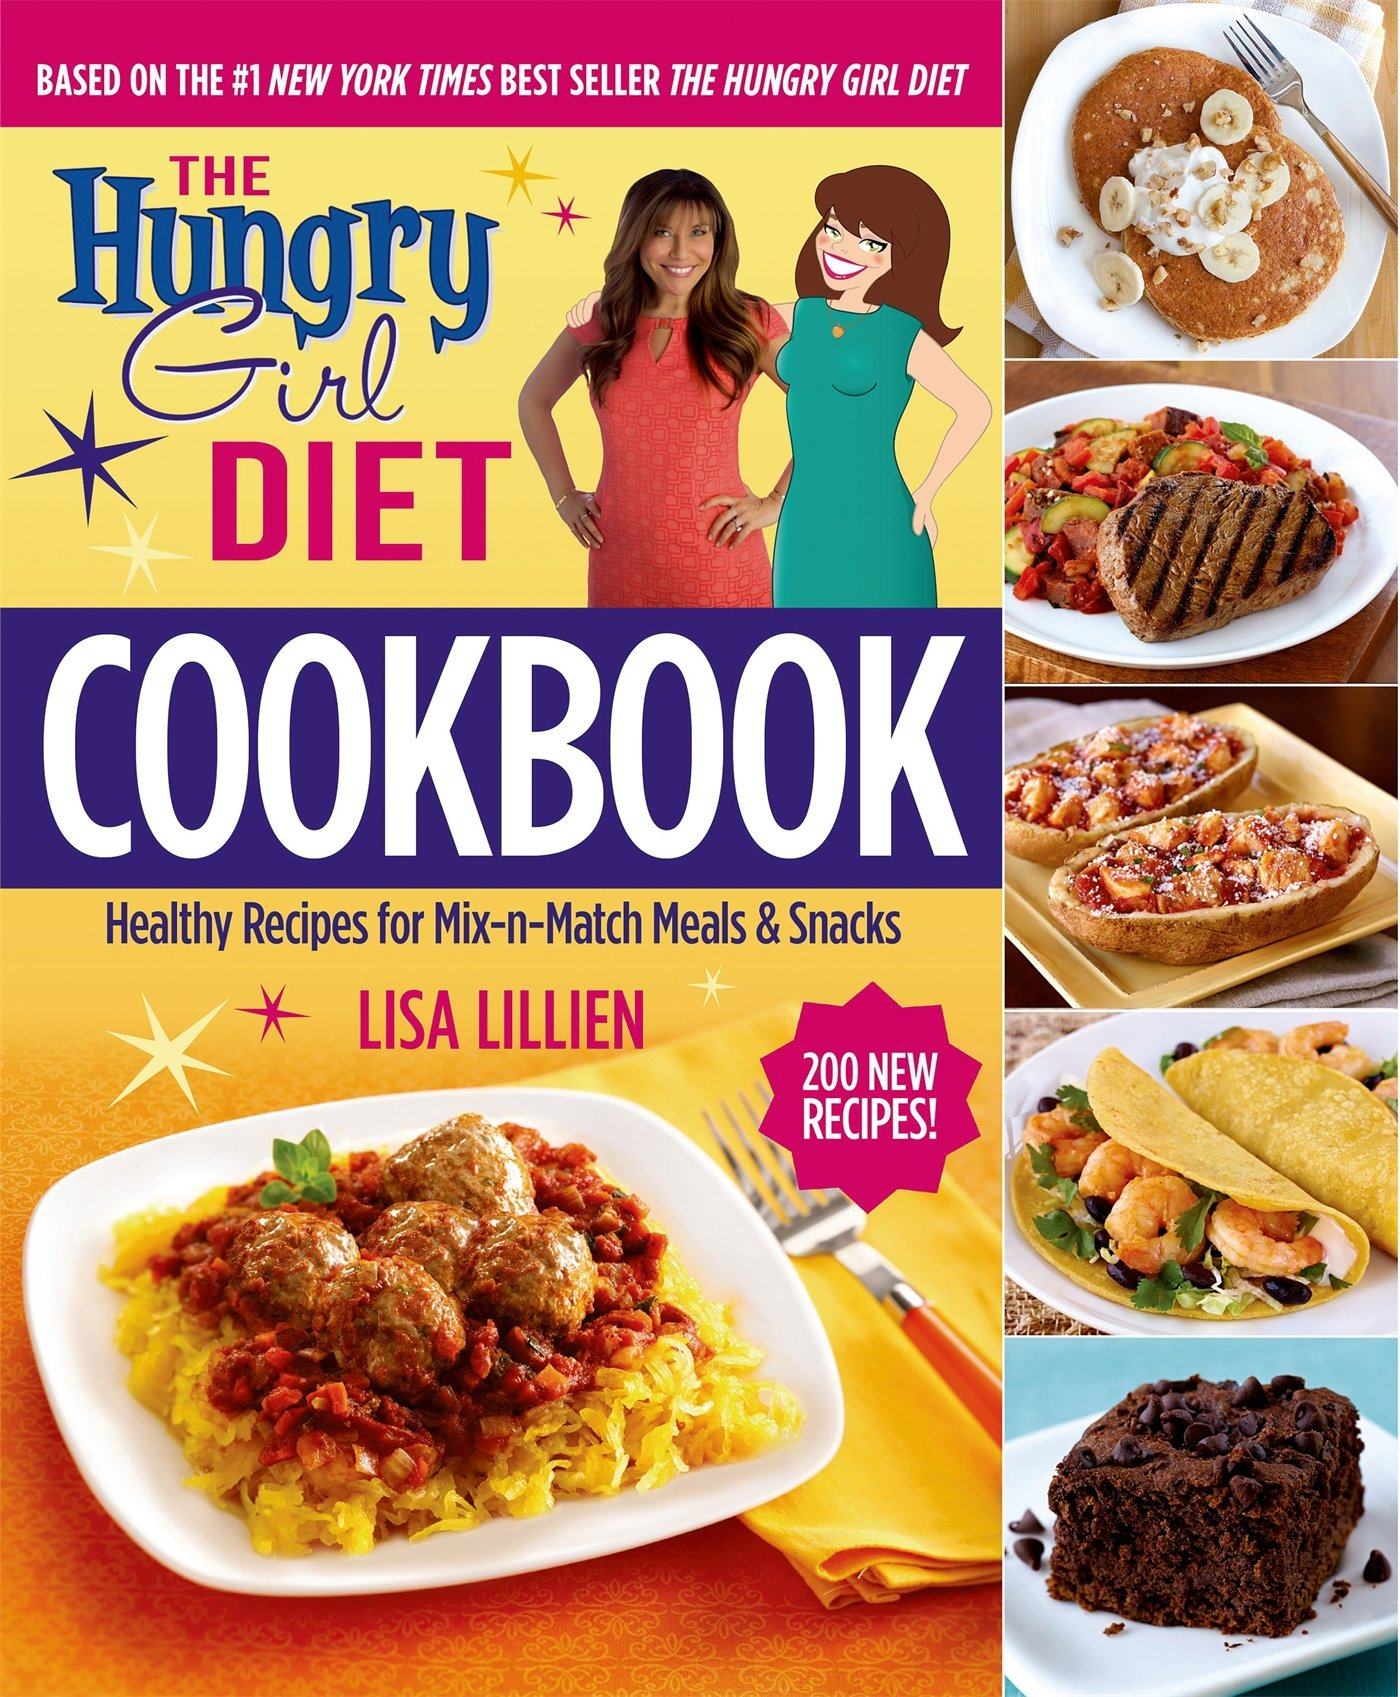 The hungry girl diet cookbook healthy recipes for mix n match the hungry girl diet cookbook healthy recipes for mix n match meals snacks lisa lillien 9781250080417 amazon books forumfinder Image collections